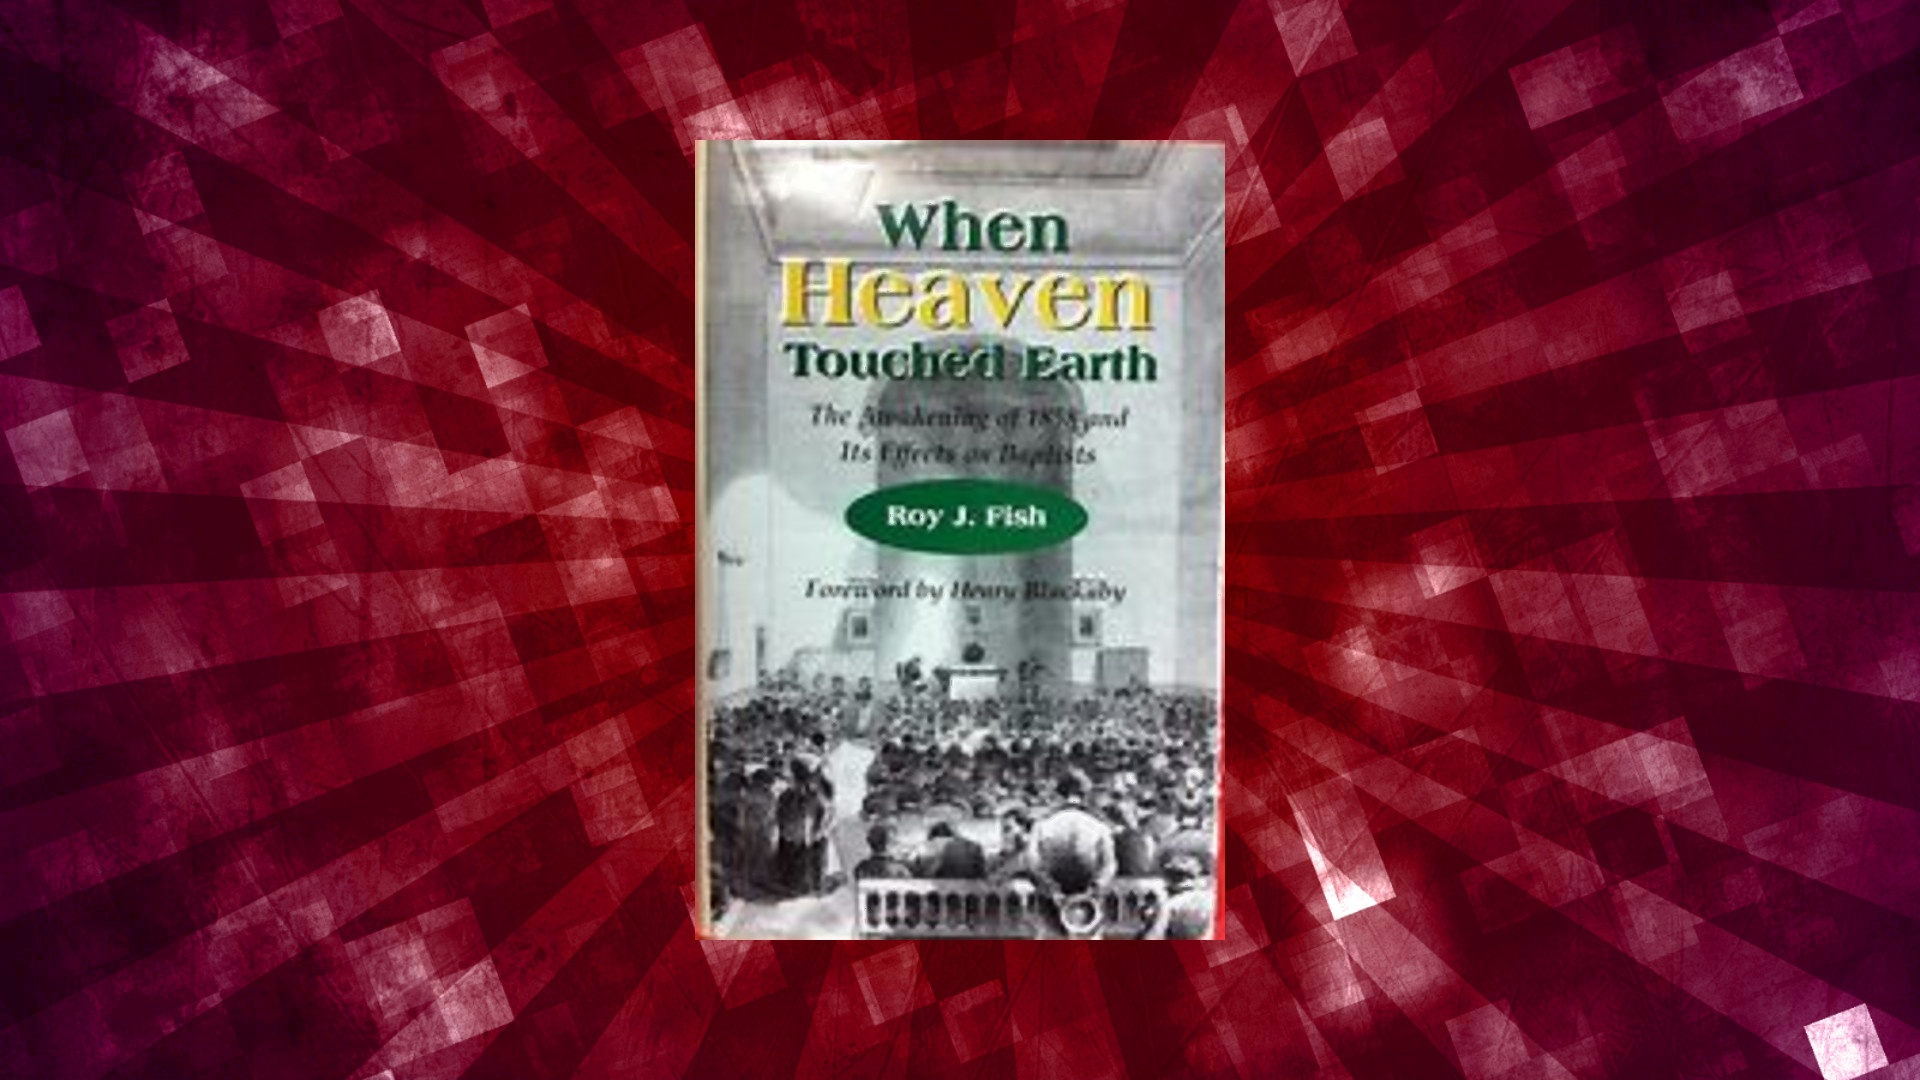 Book Review of <em>When Heaven Touched Earth: The Awakening of 1858 and Its Effects on Baptists</em> by Roy J. Fish